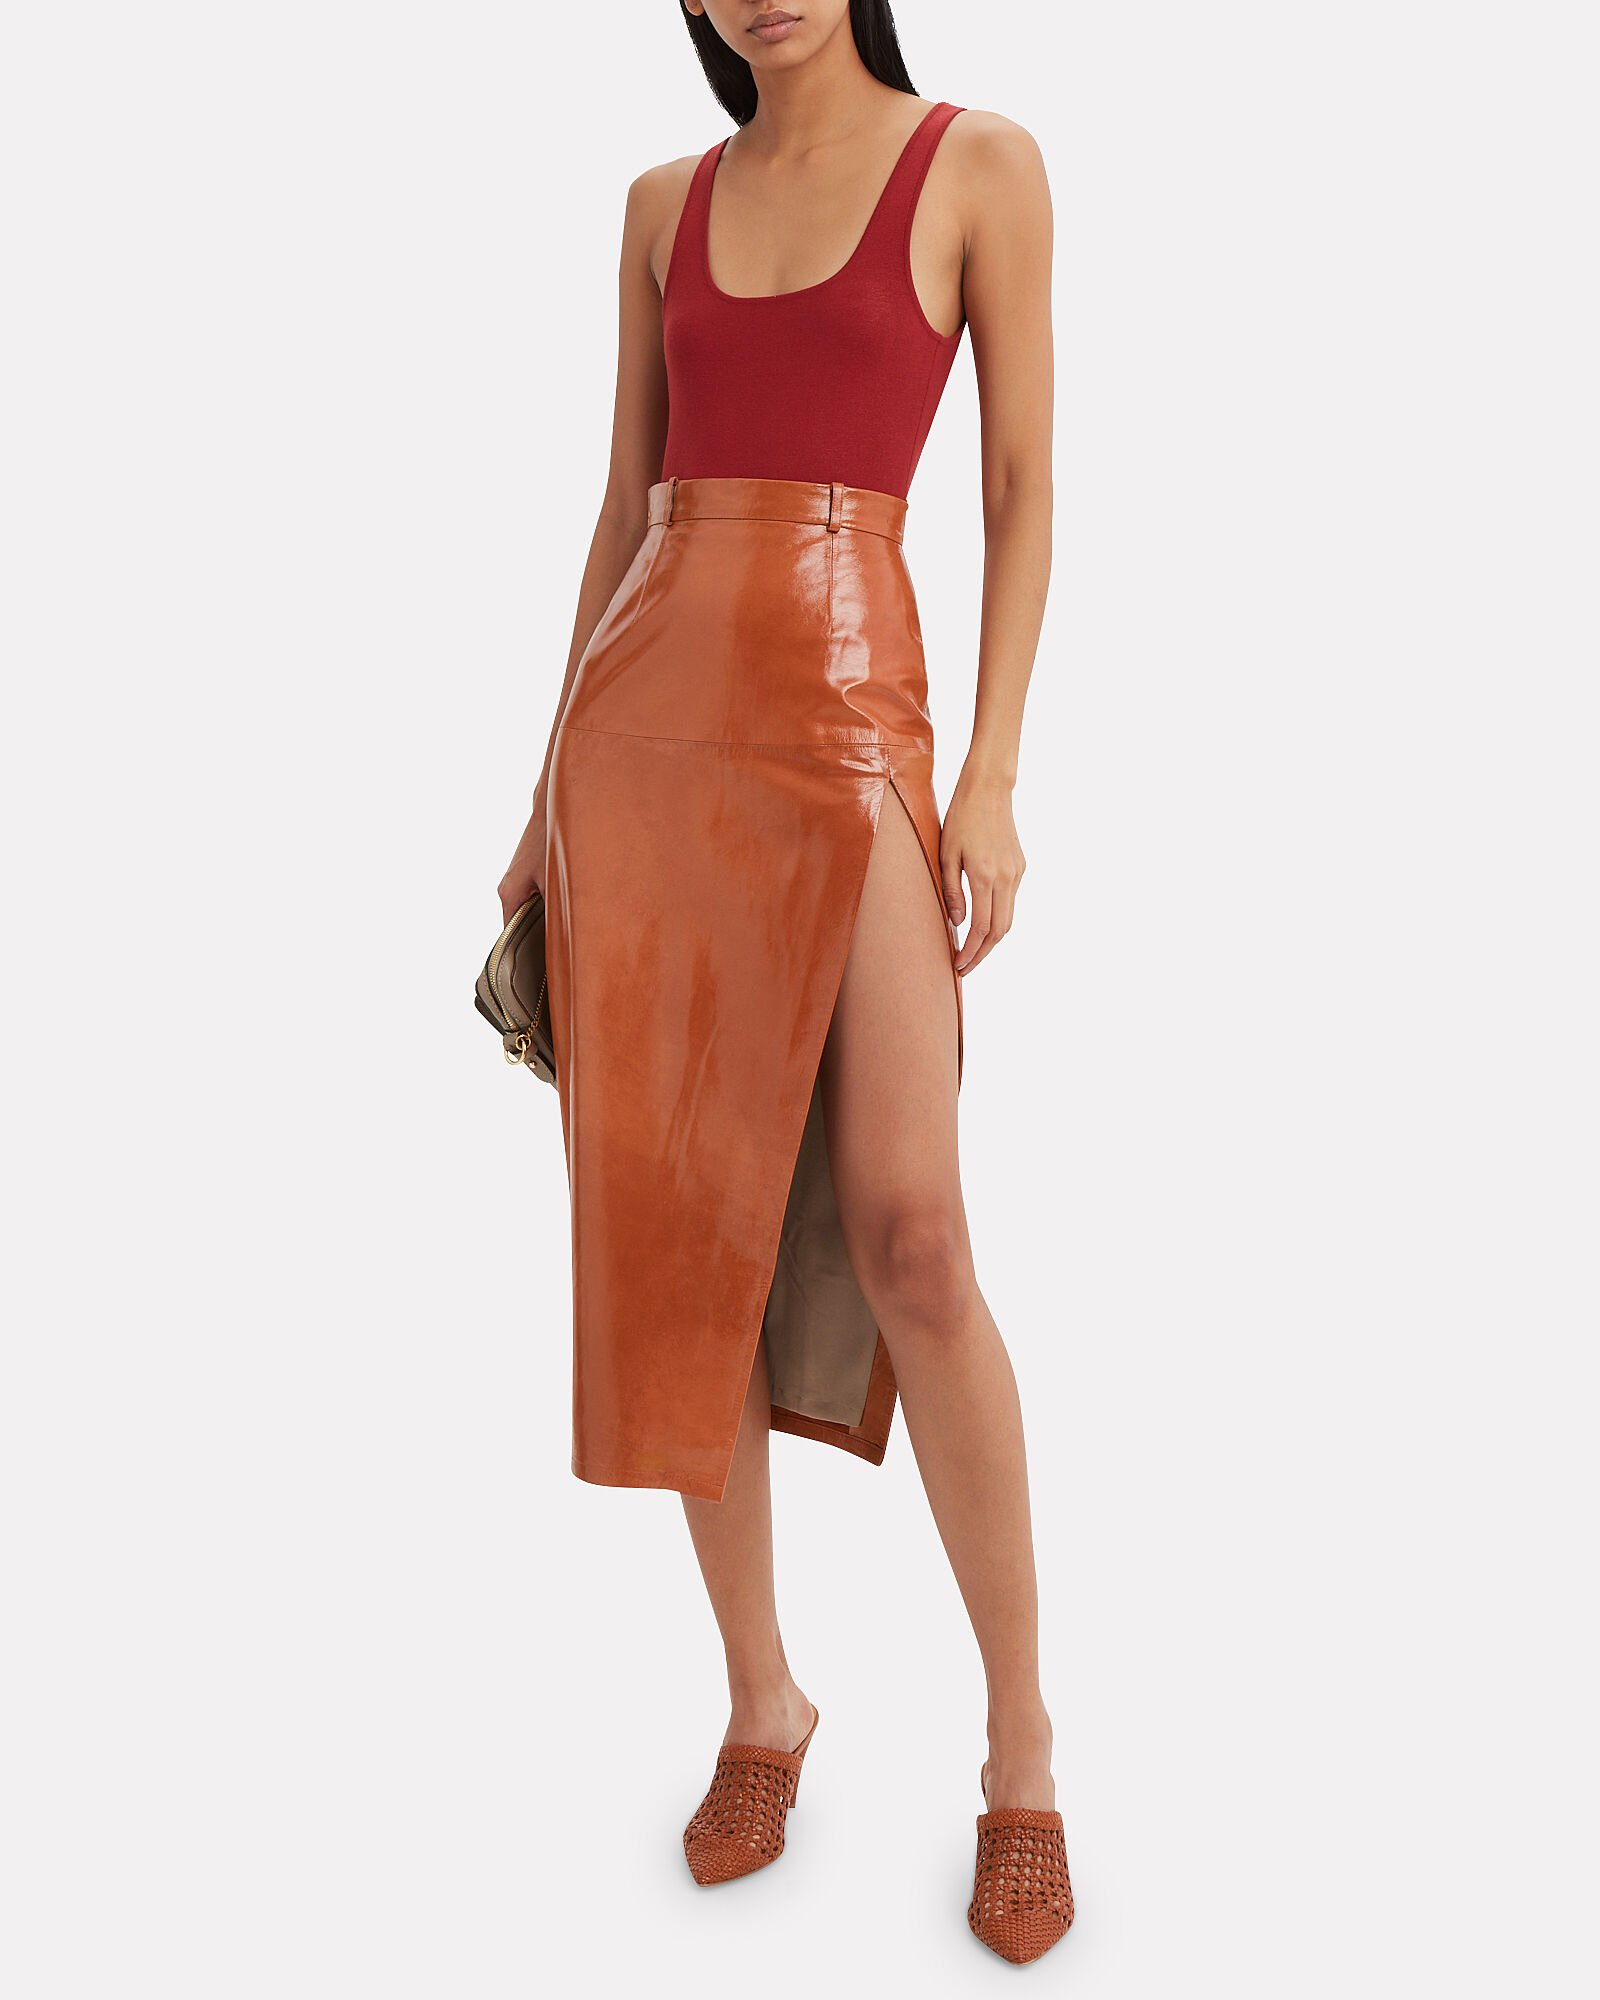 Red Patent Leather Midi Skirt, RED, hi-res